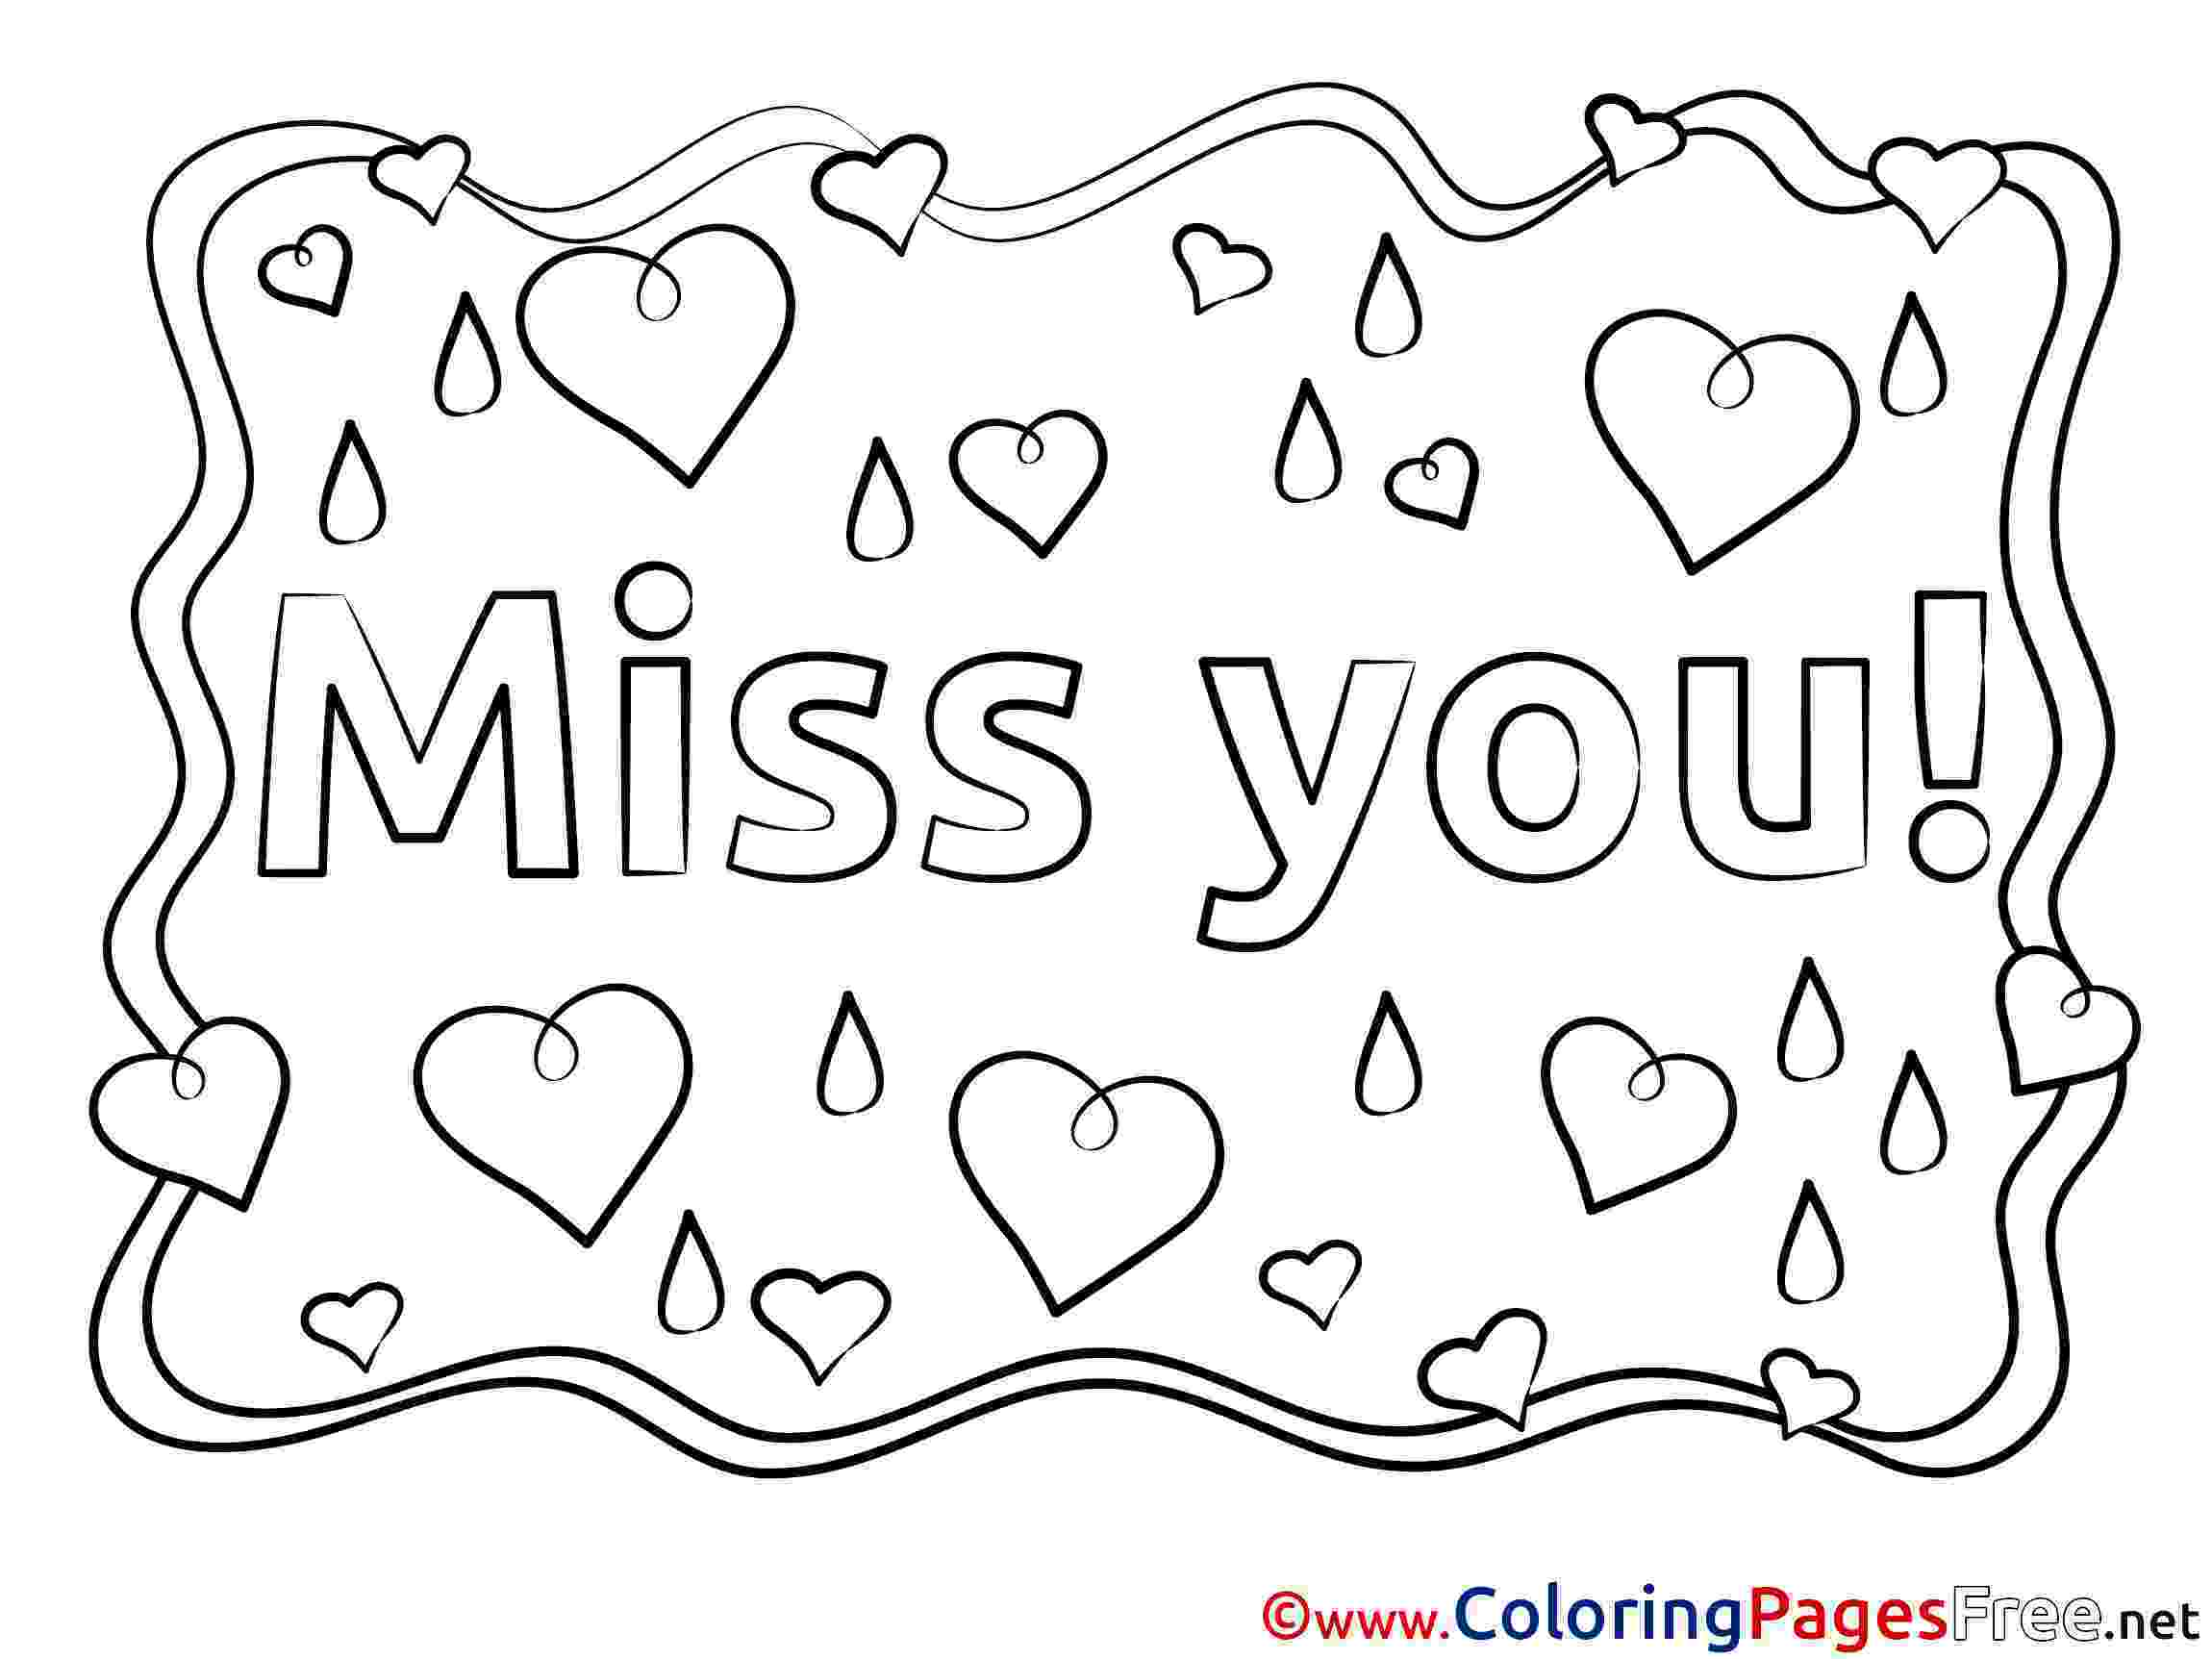 miss you coloring pages i miss you coloring pages to print we miss you i will you miss coloring pages